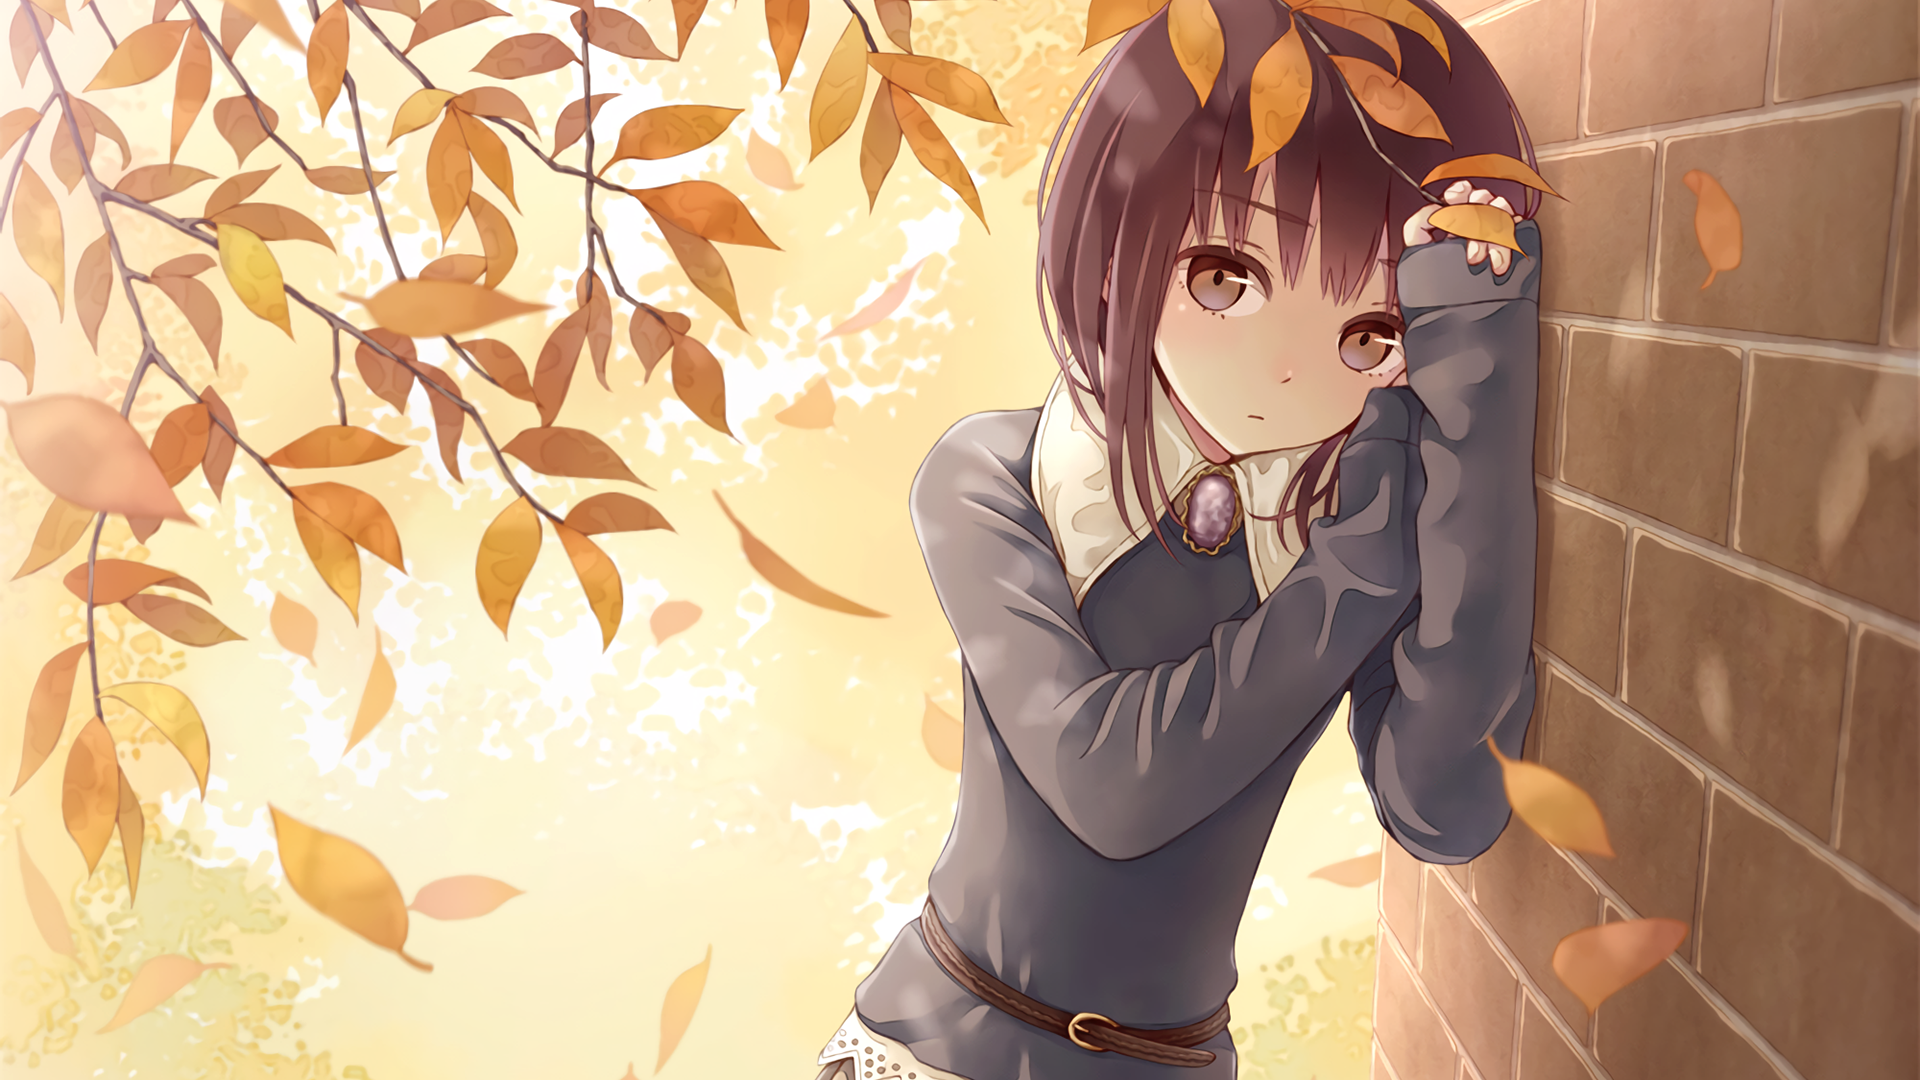 Autumn-Original-1920x1080-Need-iPhone-S-Plus-Background-for-IPhoneSPlus-Follo-wallpaper-wp3402684